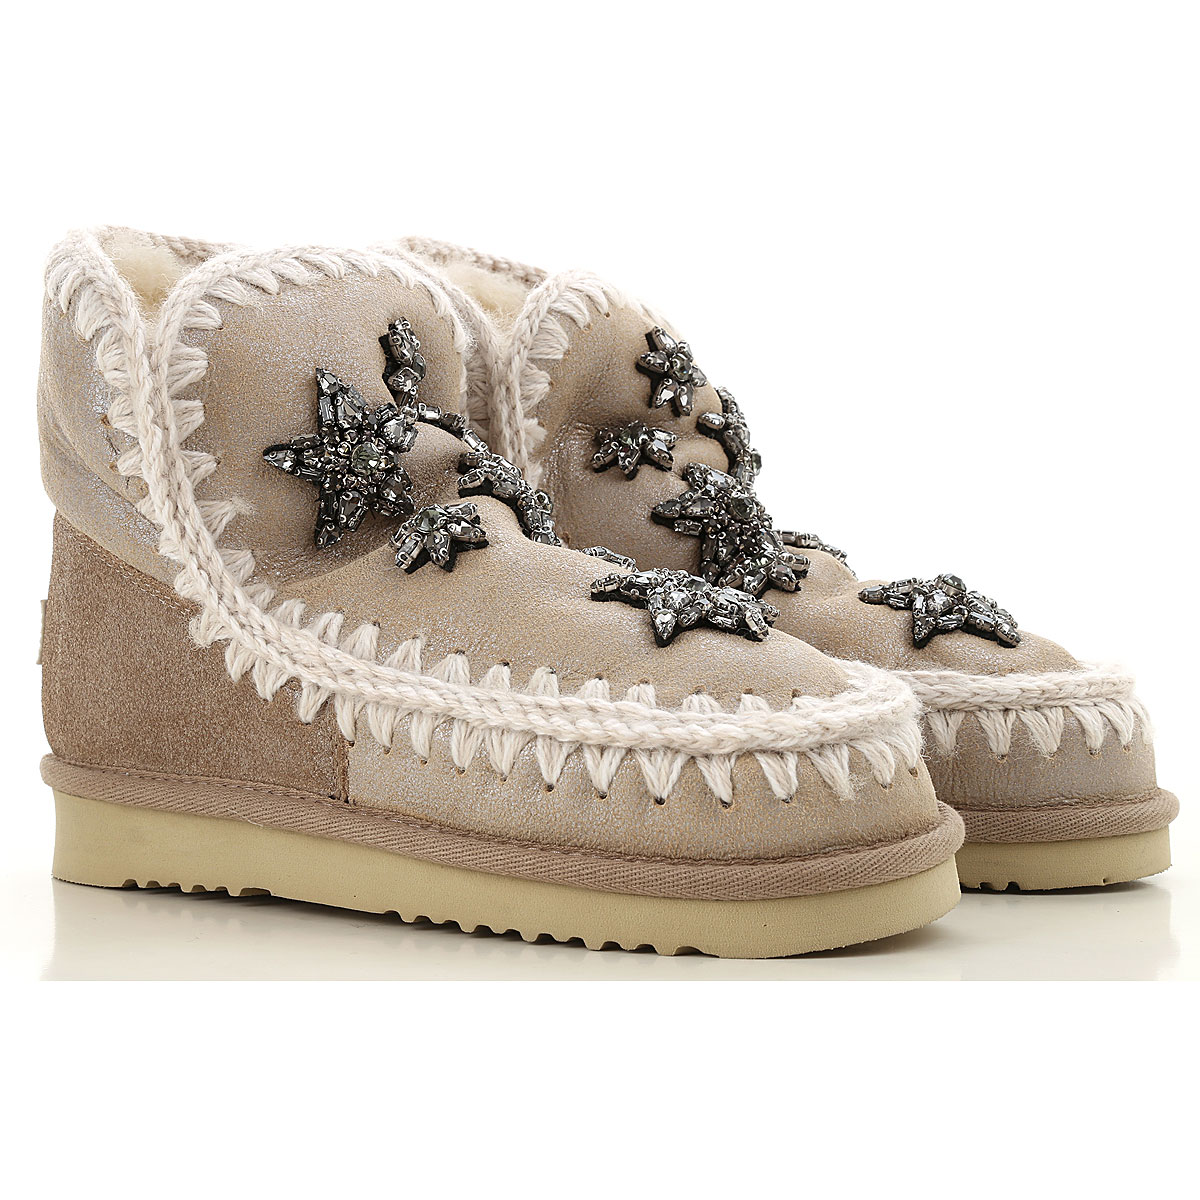 Image of Mou Boots for Women, Booties, Stone, Suede leather, 2017, EUR 37 - UK 4 - USA 6.5 EUR 38 - UK 5 - USA 7.5 EUR 39 - UK 6 - USA 8.5 EUR 40 - UK 7 - USA 9.5